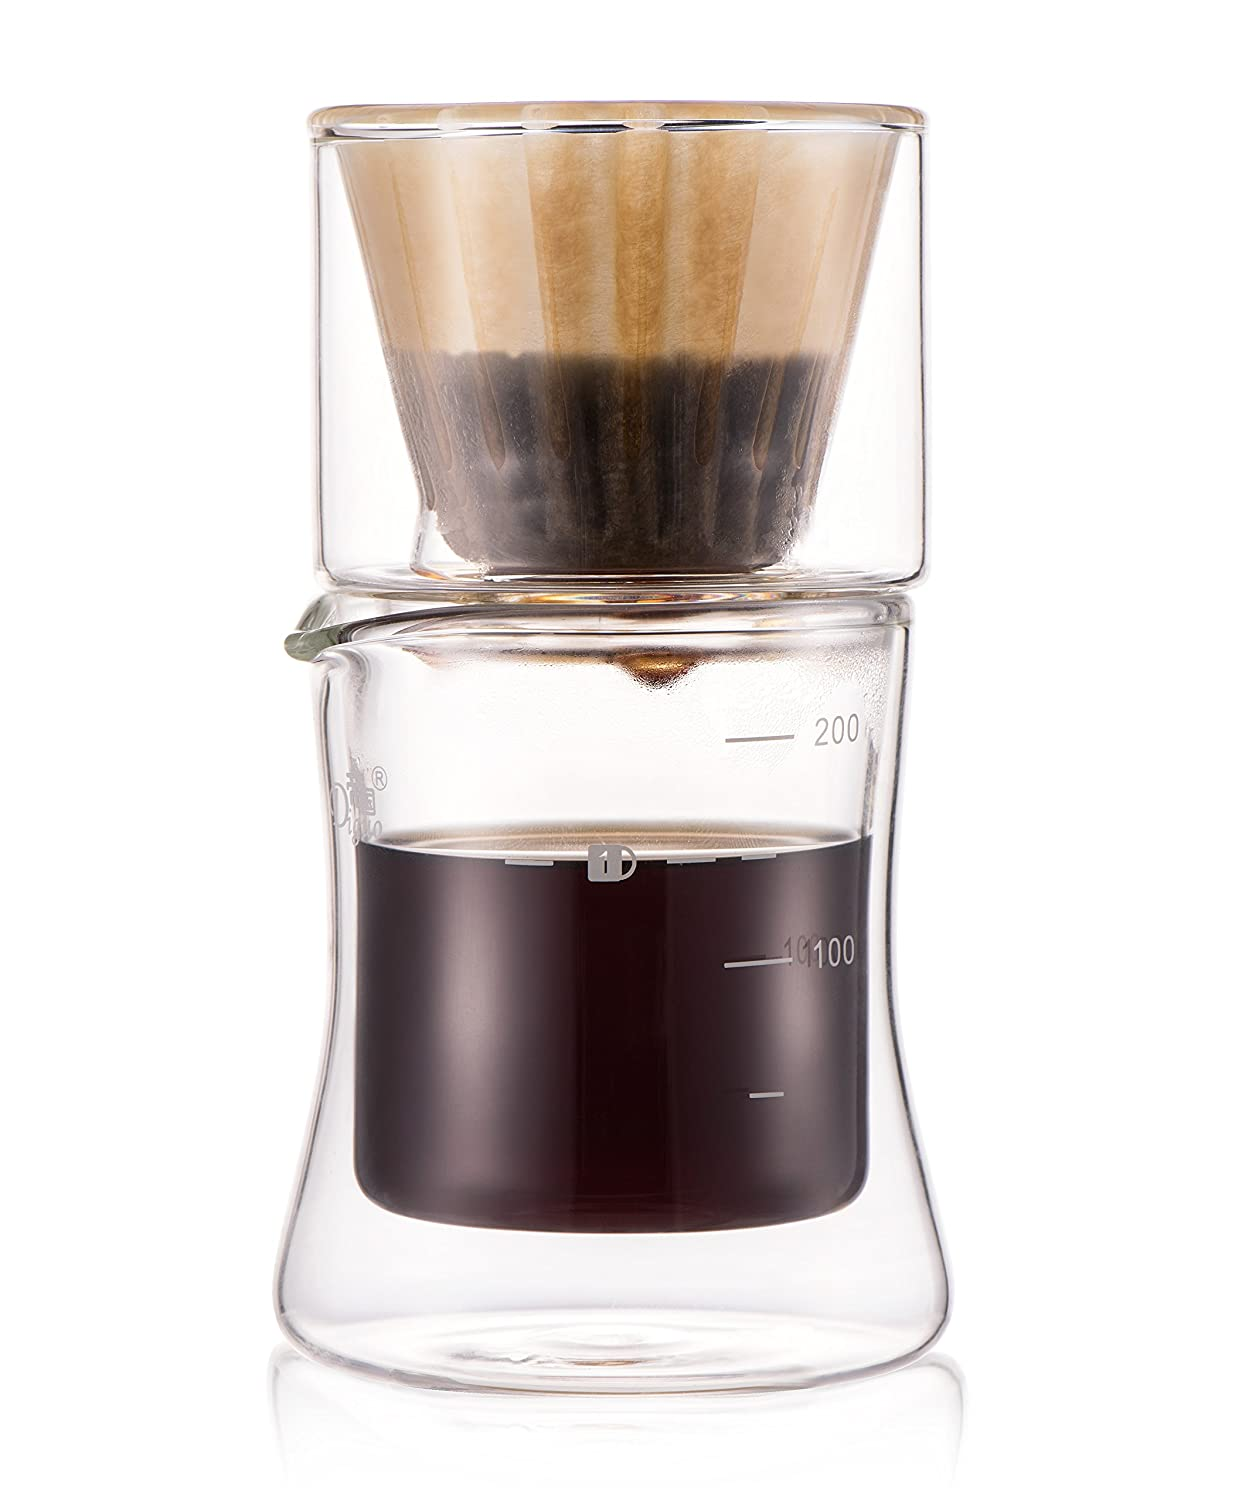 Diguo Nature Waveシリーズ用紙コーヒーフィルタ使い捨てコーヒーフィルタBleached ( 50 Count Wave用紙フィルタ  Coffee Maker Set B01N8TDKQG